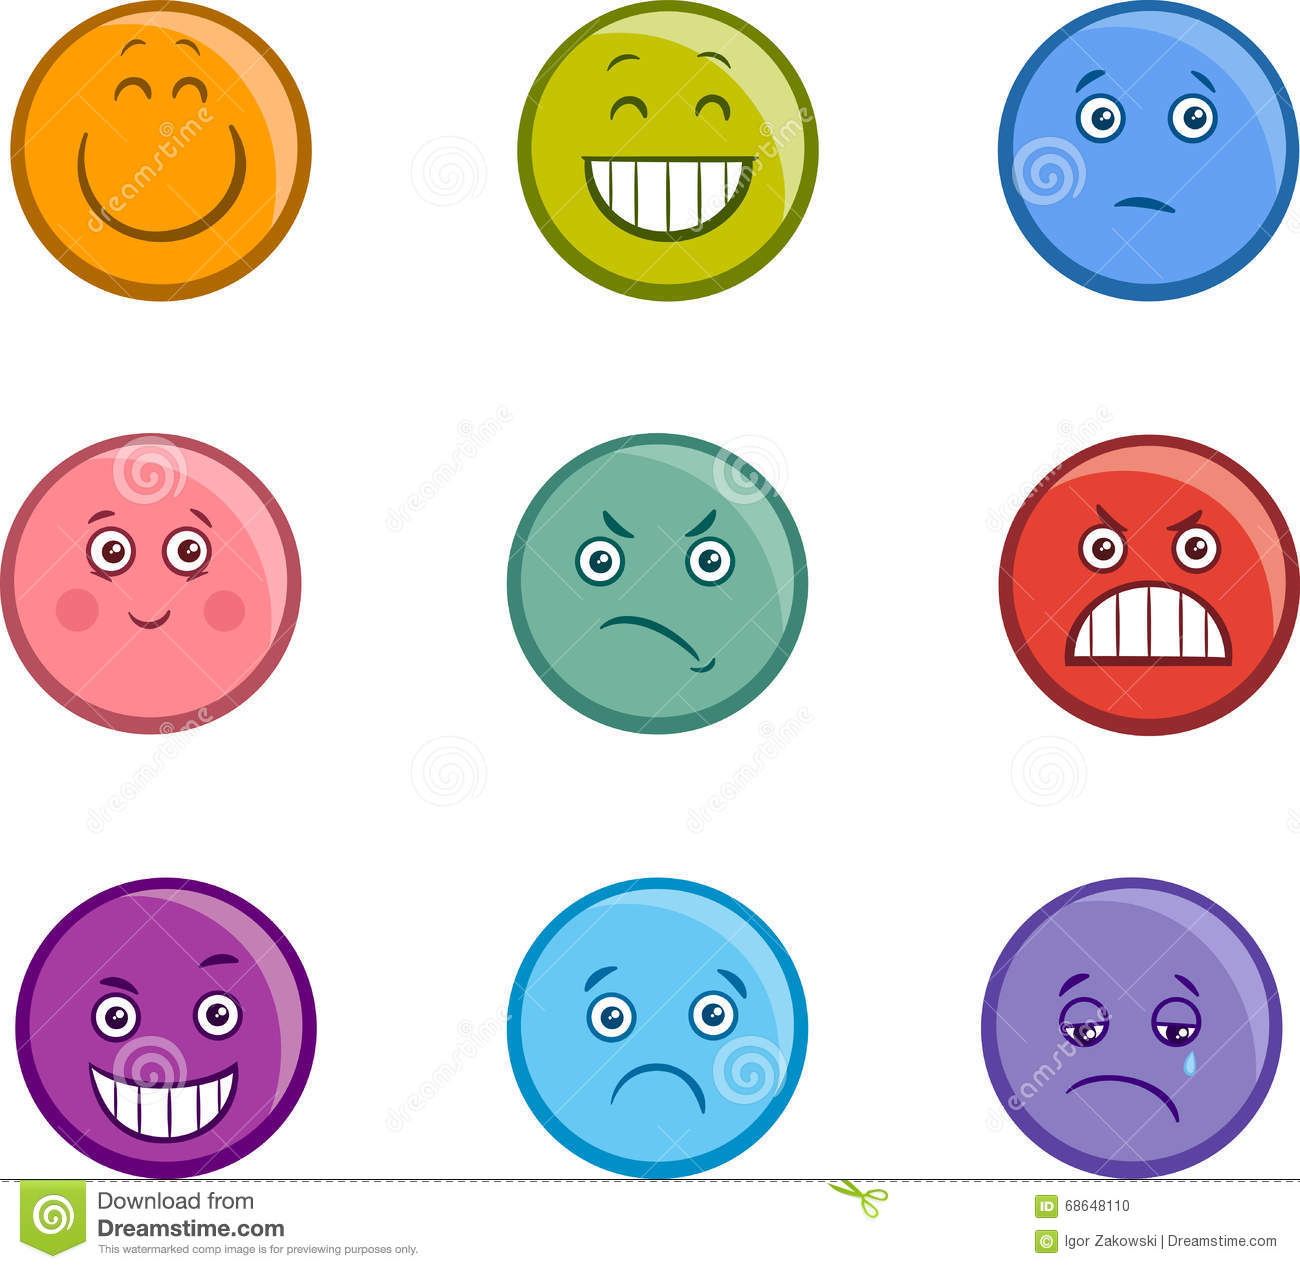 Cartoon Emoticons Faces Set Stock Vector - Illustration of ...